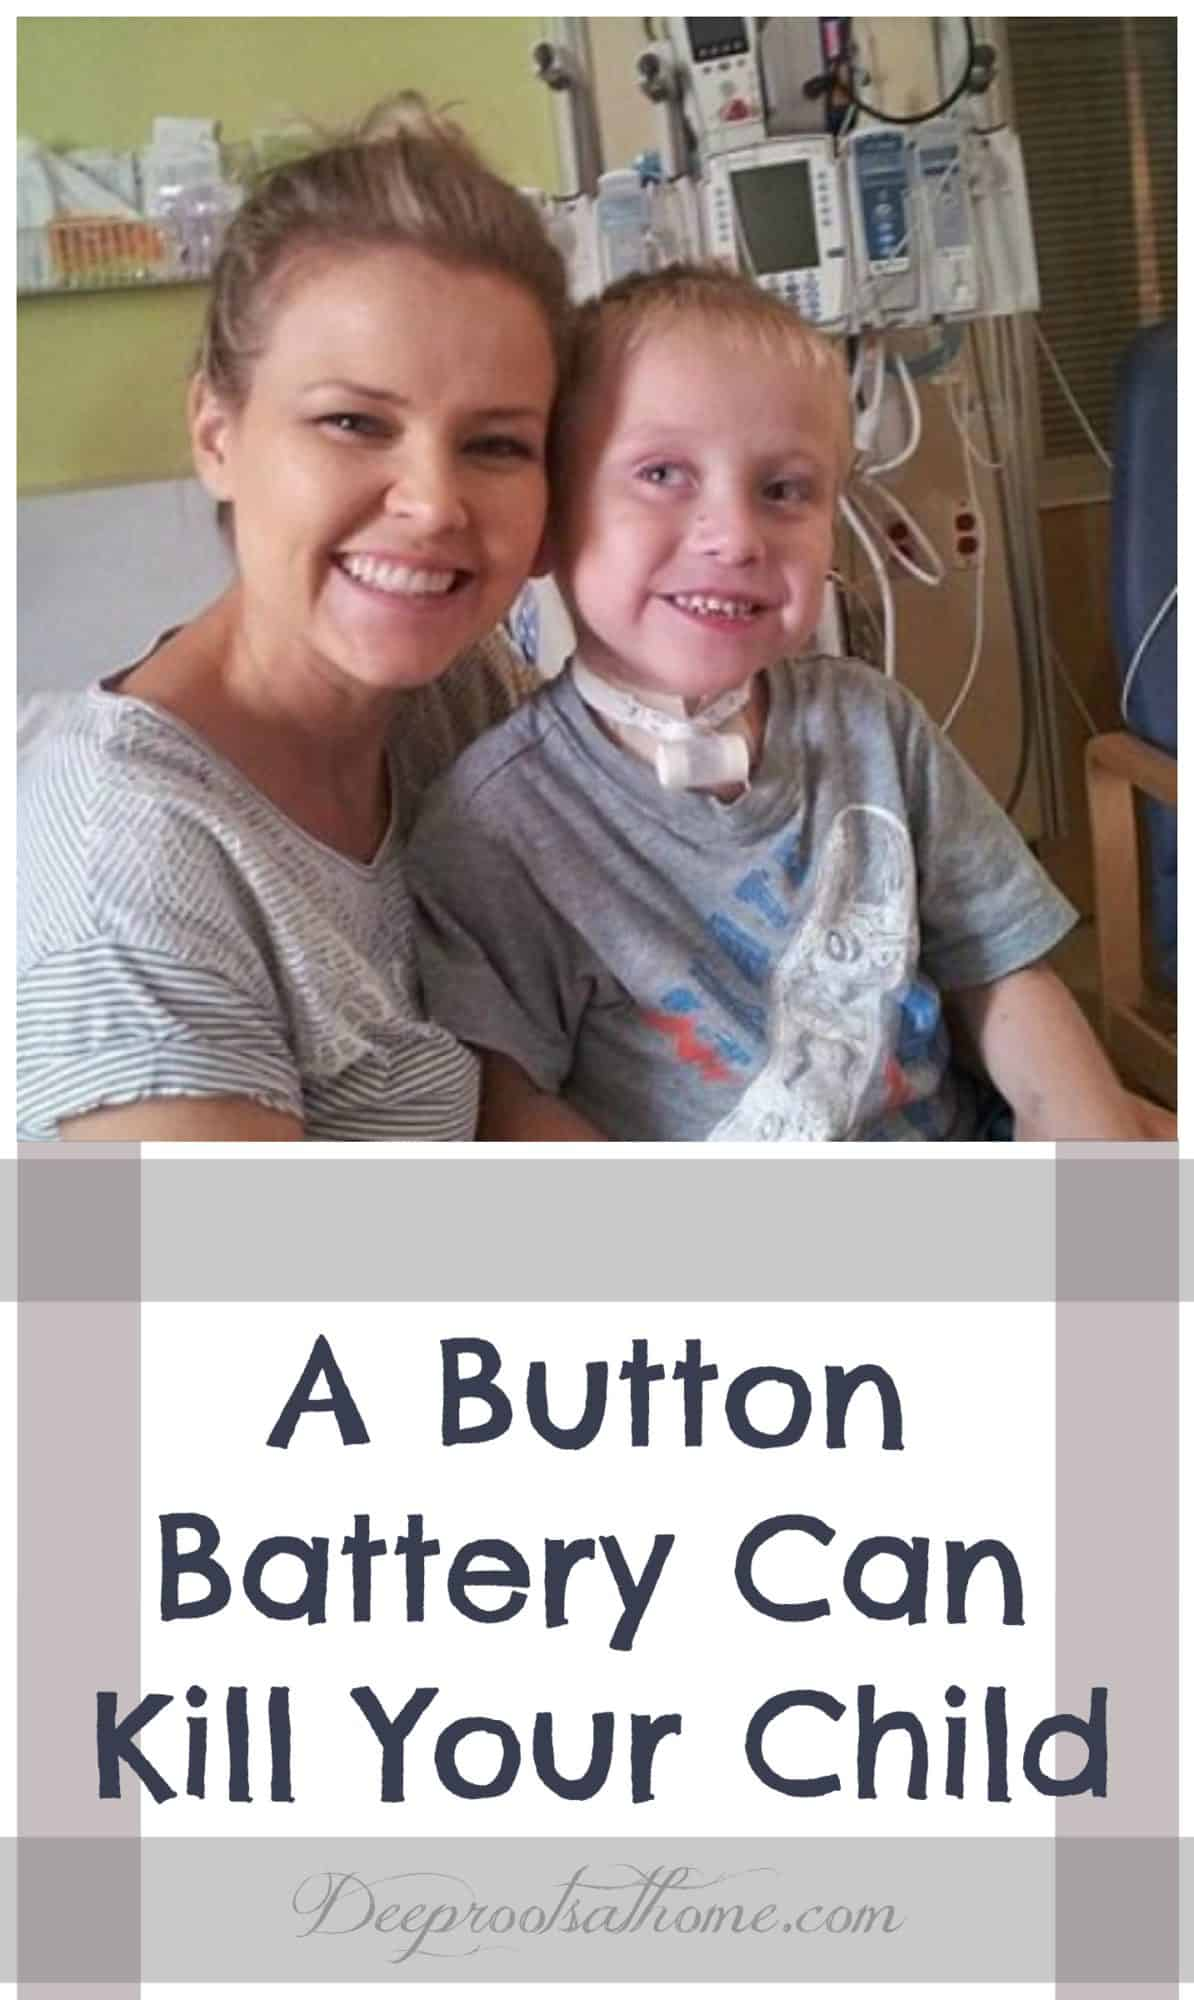 Parents: One Little Disc-Like Button Battery Can Kill Your Child, caution, household, homemaking, alert parents, danger, lithium batteries, fatal ingestion, SafeKids.org, Emmett's Fight foundation, Rauch Family, Emmett, accidental swallowing, prevention, keep batteries out of children's reach, safeguard kids, emergency, mini remote controls, small calculators, watches, key fobs, flameless candles, electronics, severe burns, preventable accident in children, toddler, babies, alert, pediatrics, emergency room, musical greeting cards, x-ray, button battery in child's throat